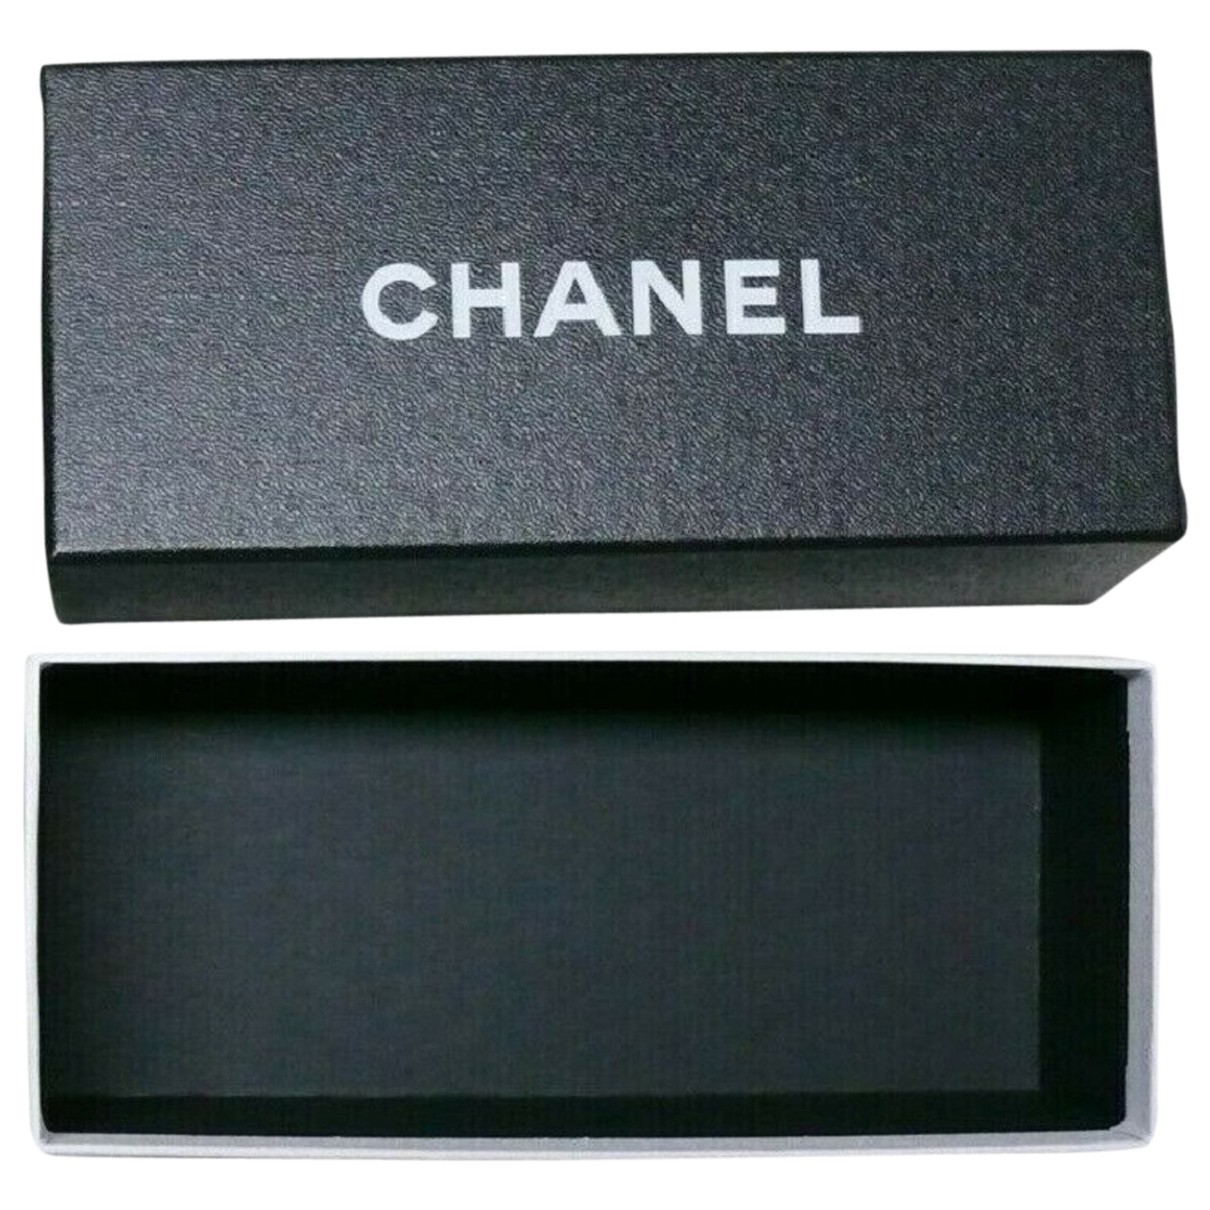 Chanel N Black Home decor for Life & Living N